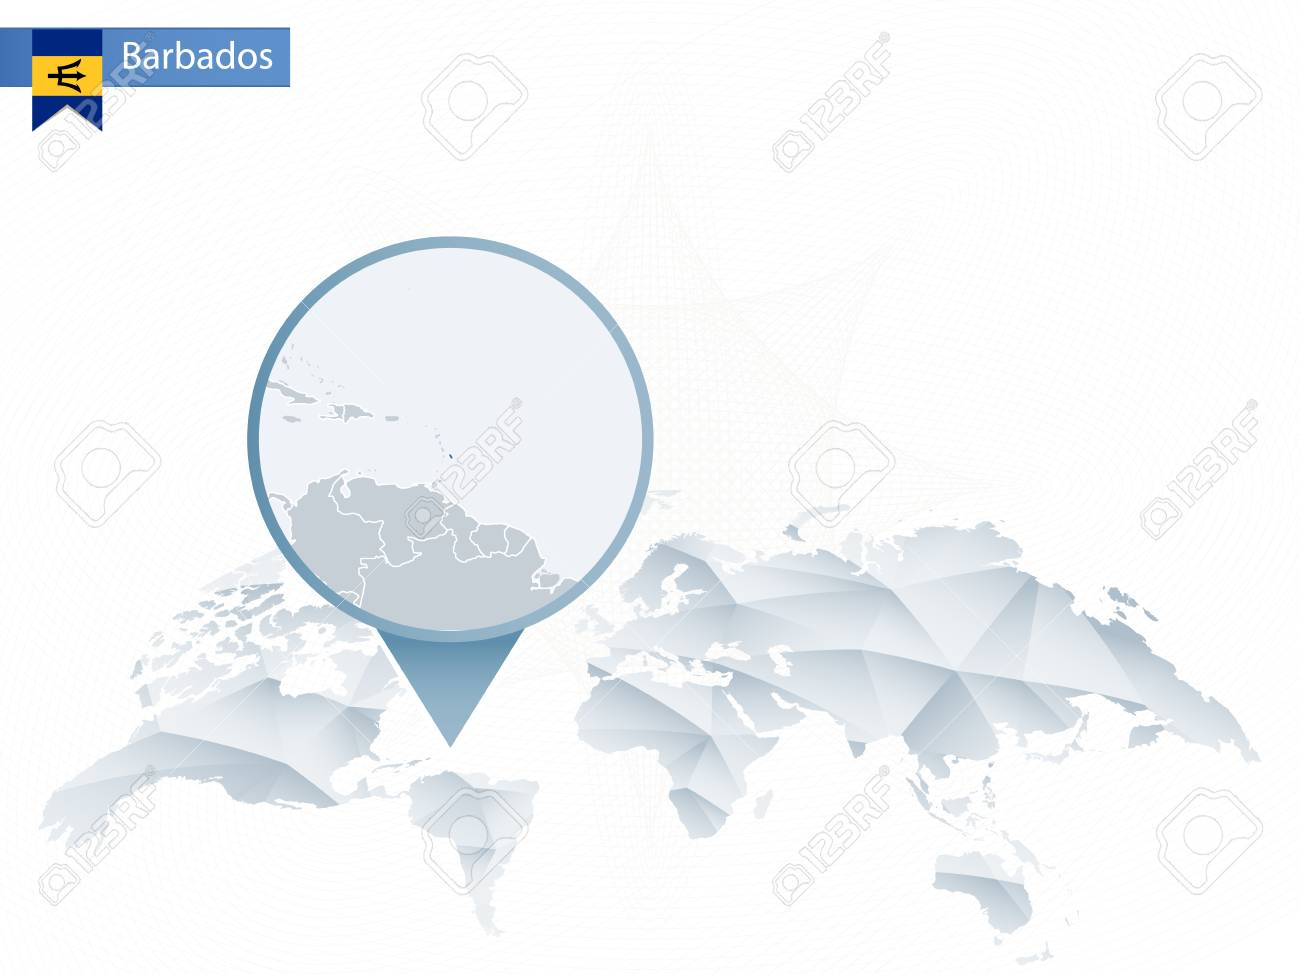 Picture of: Abstract Rounded World Map With Pinned Detailed Barbados Map Royalty Free Cliparts Vectors And Stock Illustration Image 86916264